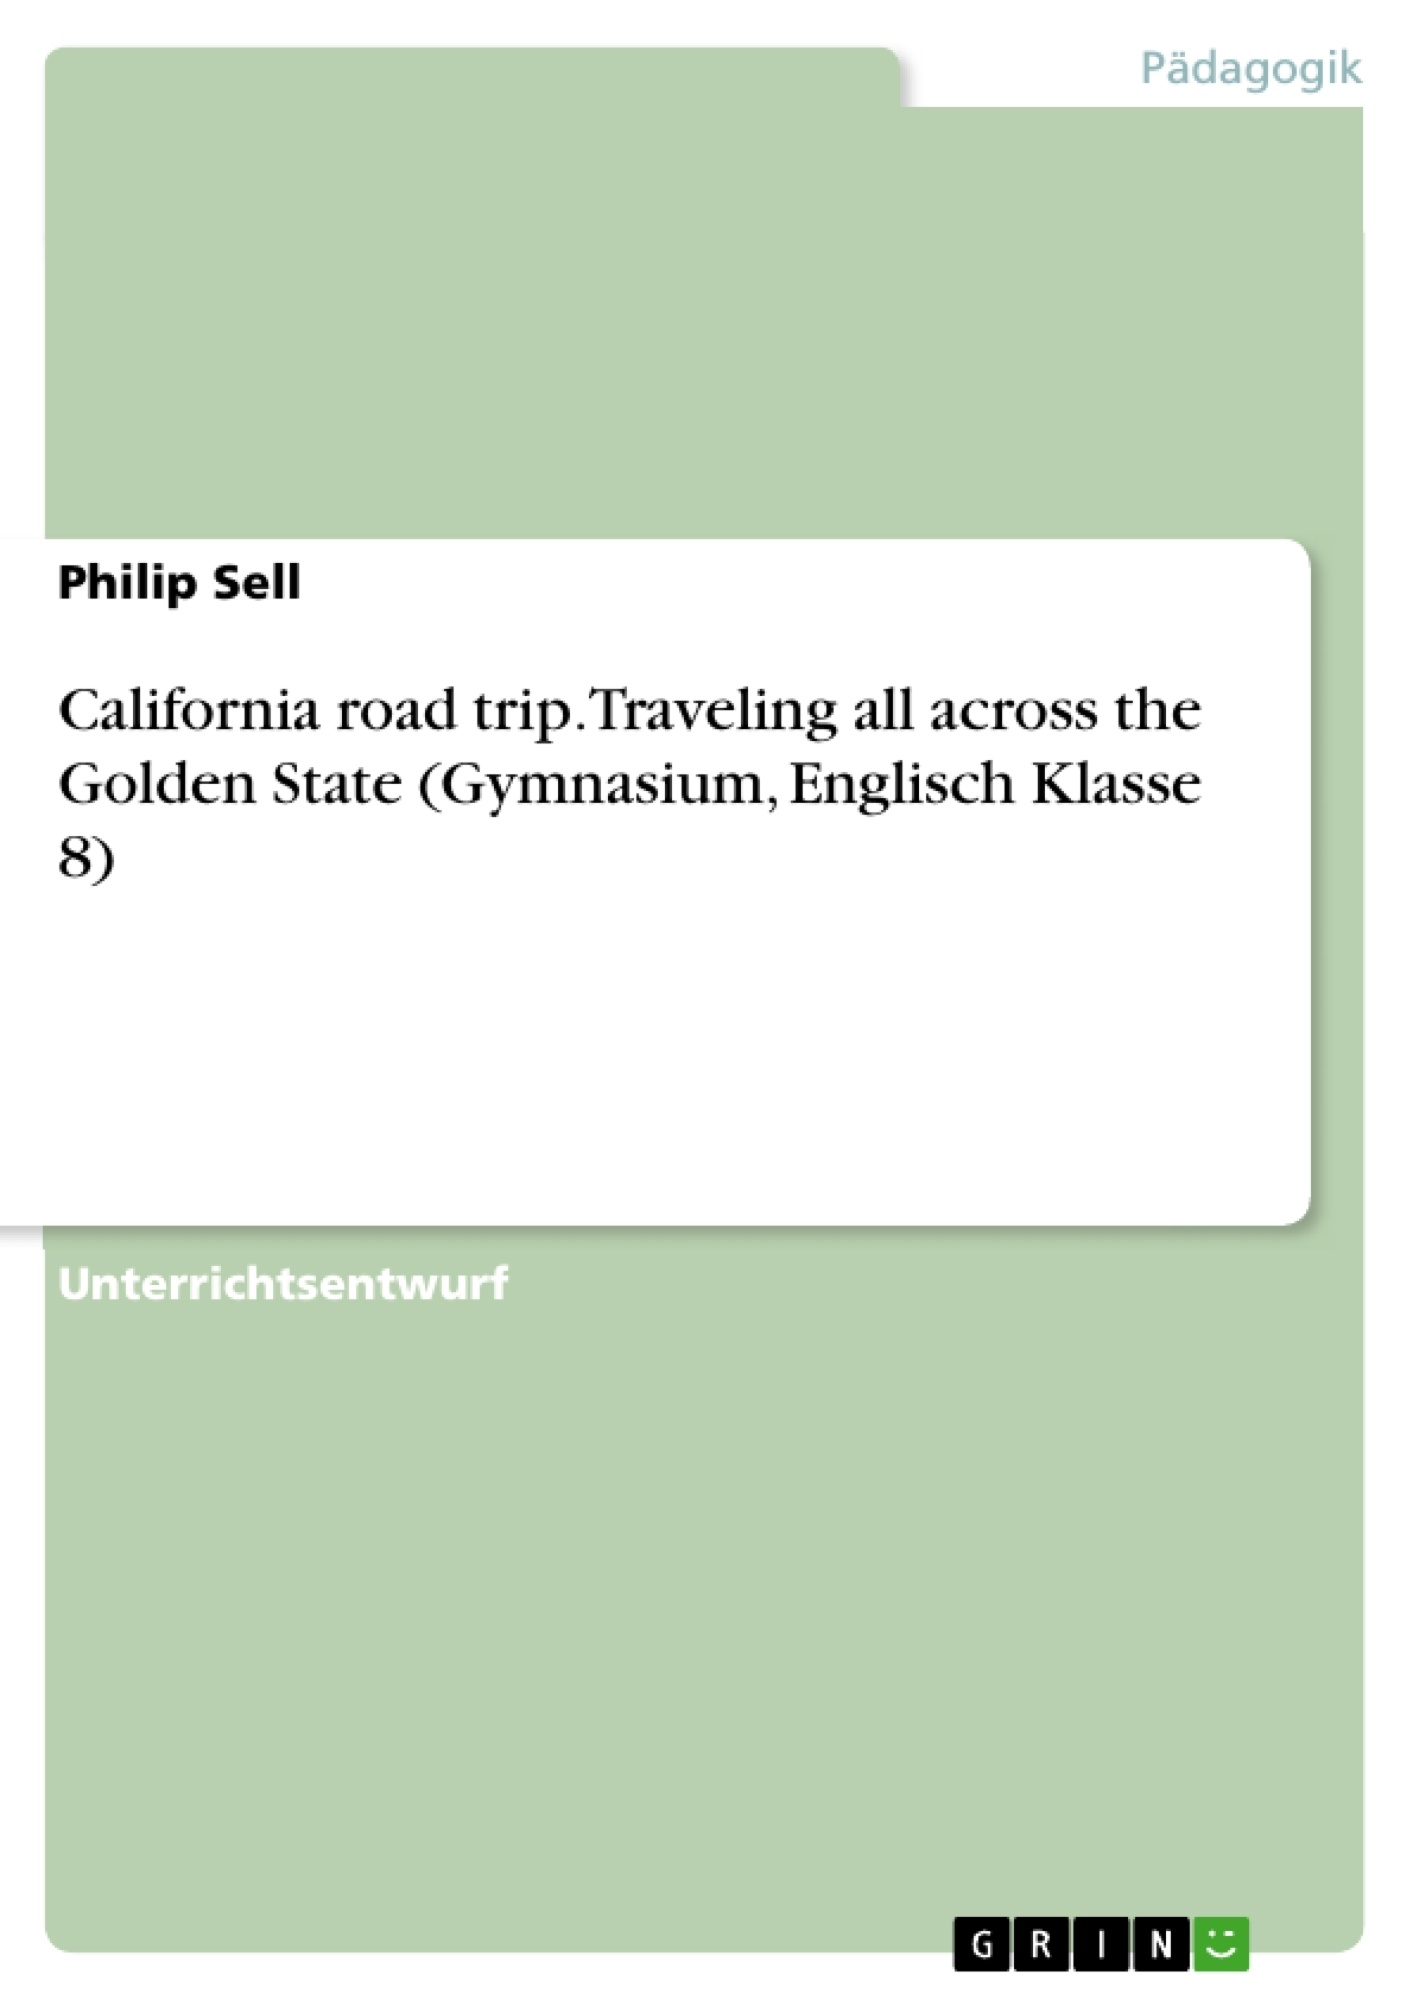 Titel: California road trip. Traveling all across the Golden State (Gymnasium, Englisch Klasse 8)